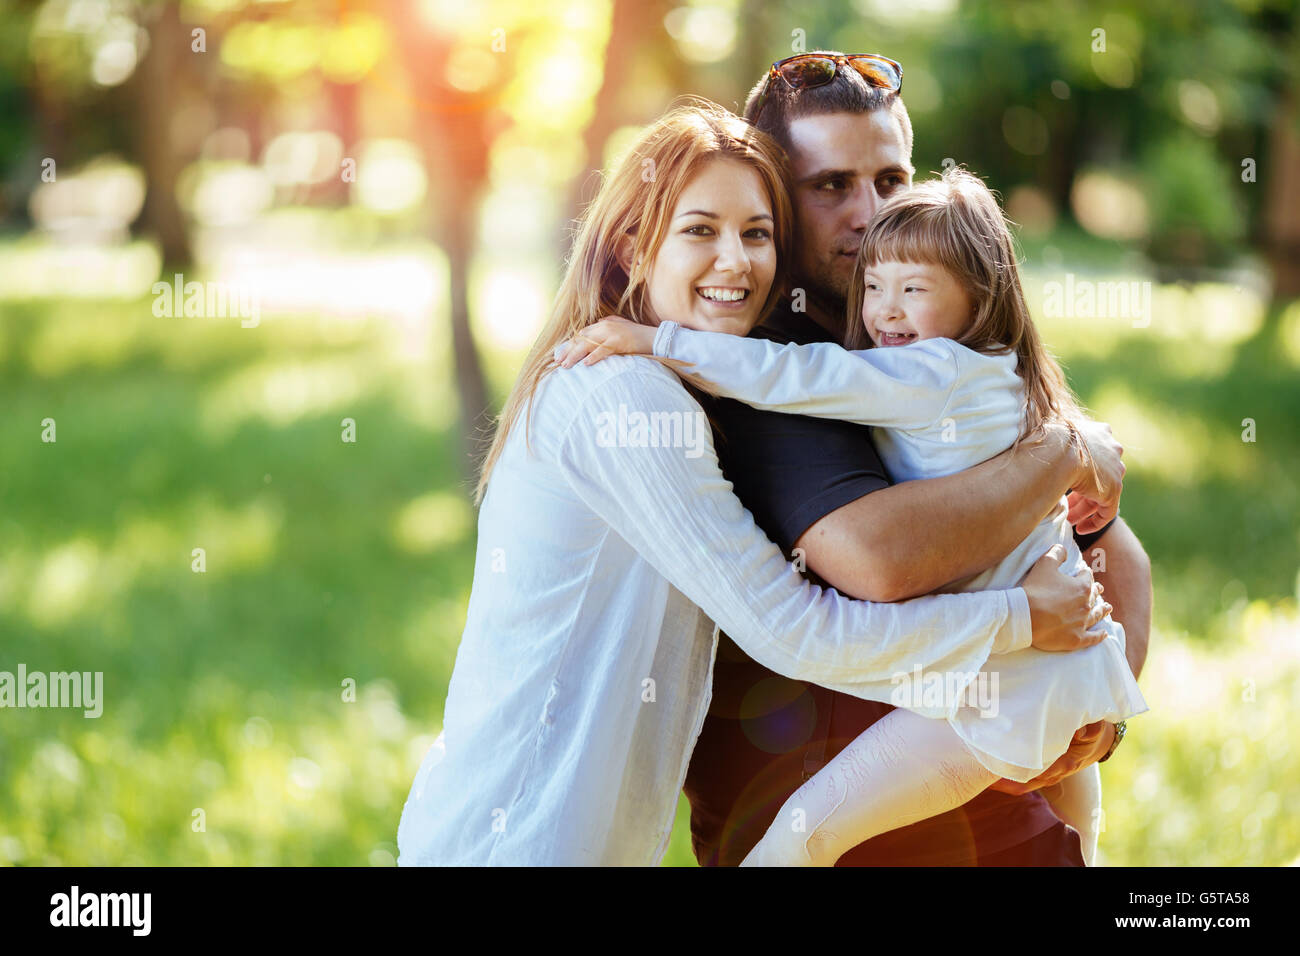 Family happy outdoors with adopted child born with down syndrome - Stock Image